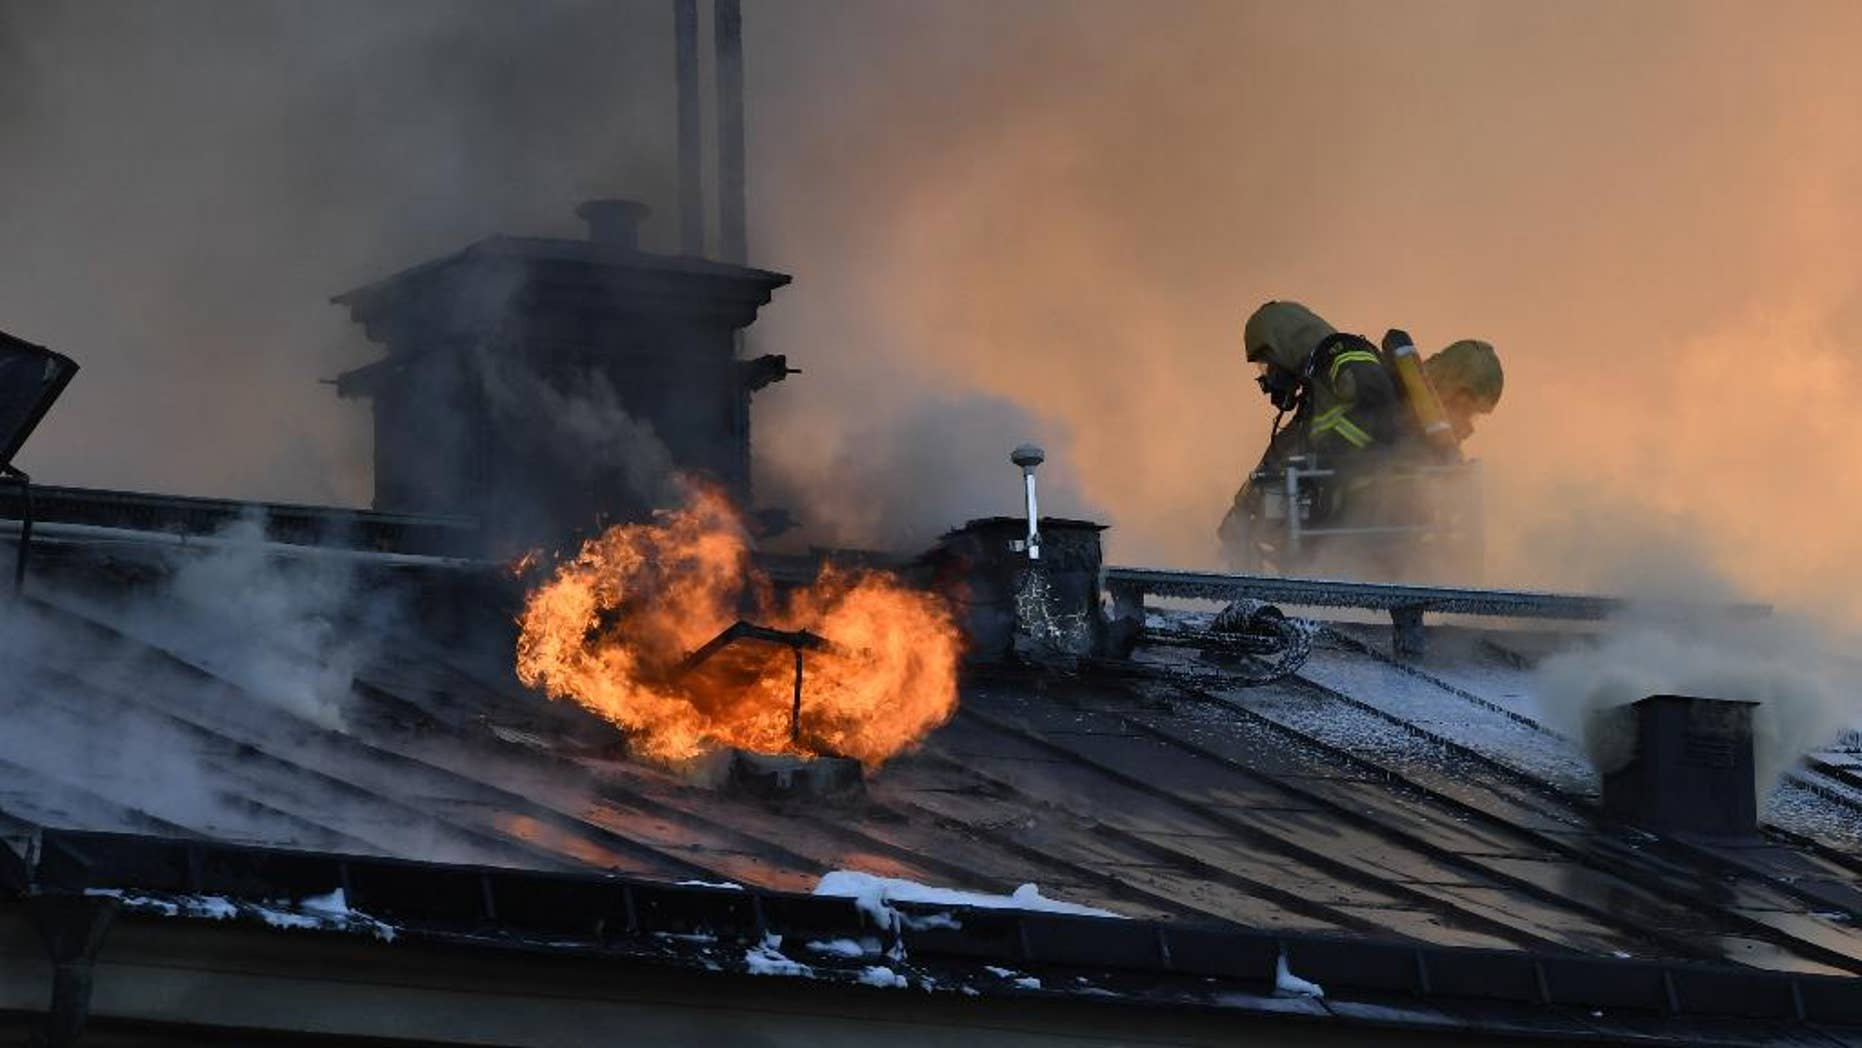 Firefighters try to extinguishing a fire at the Royal Institute of Art in Stockholm, Sweden, Wednesday, Sept. 21, 2016. A fire has started in a building belonging to Stockholm's Royal Institute of Art, sending a plume of smoke over large parts of the Swedish capital. Dozens of firefighters struggled to contain the blaze, which raced through the attic and roof of the building on Skeppsholmen island near downtown Stockholm on Wednesday. There were no reports of injuries. (Anders Wiklund/TT News Agency via AP)